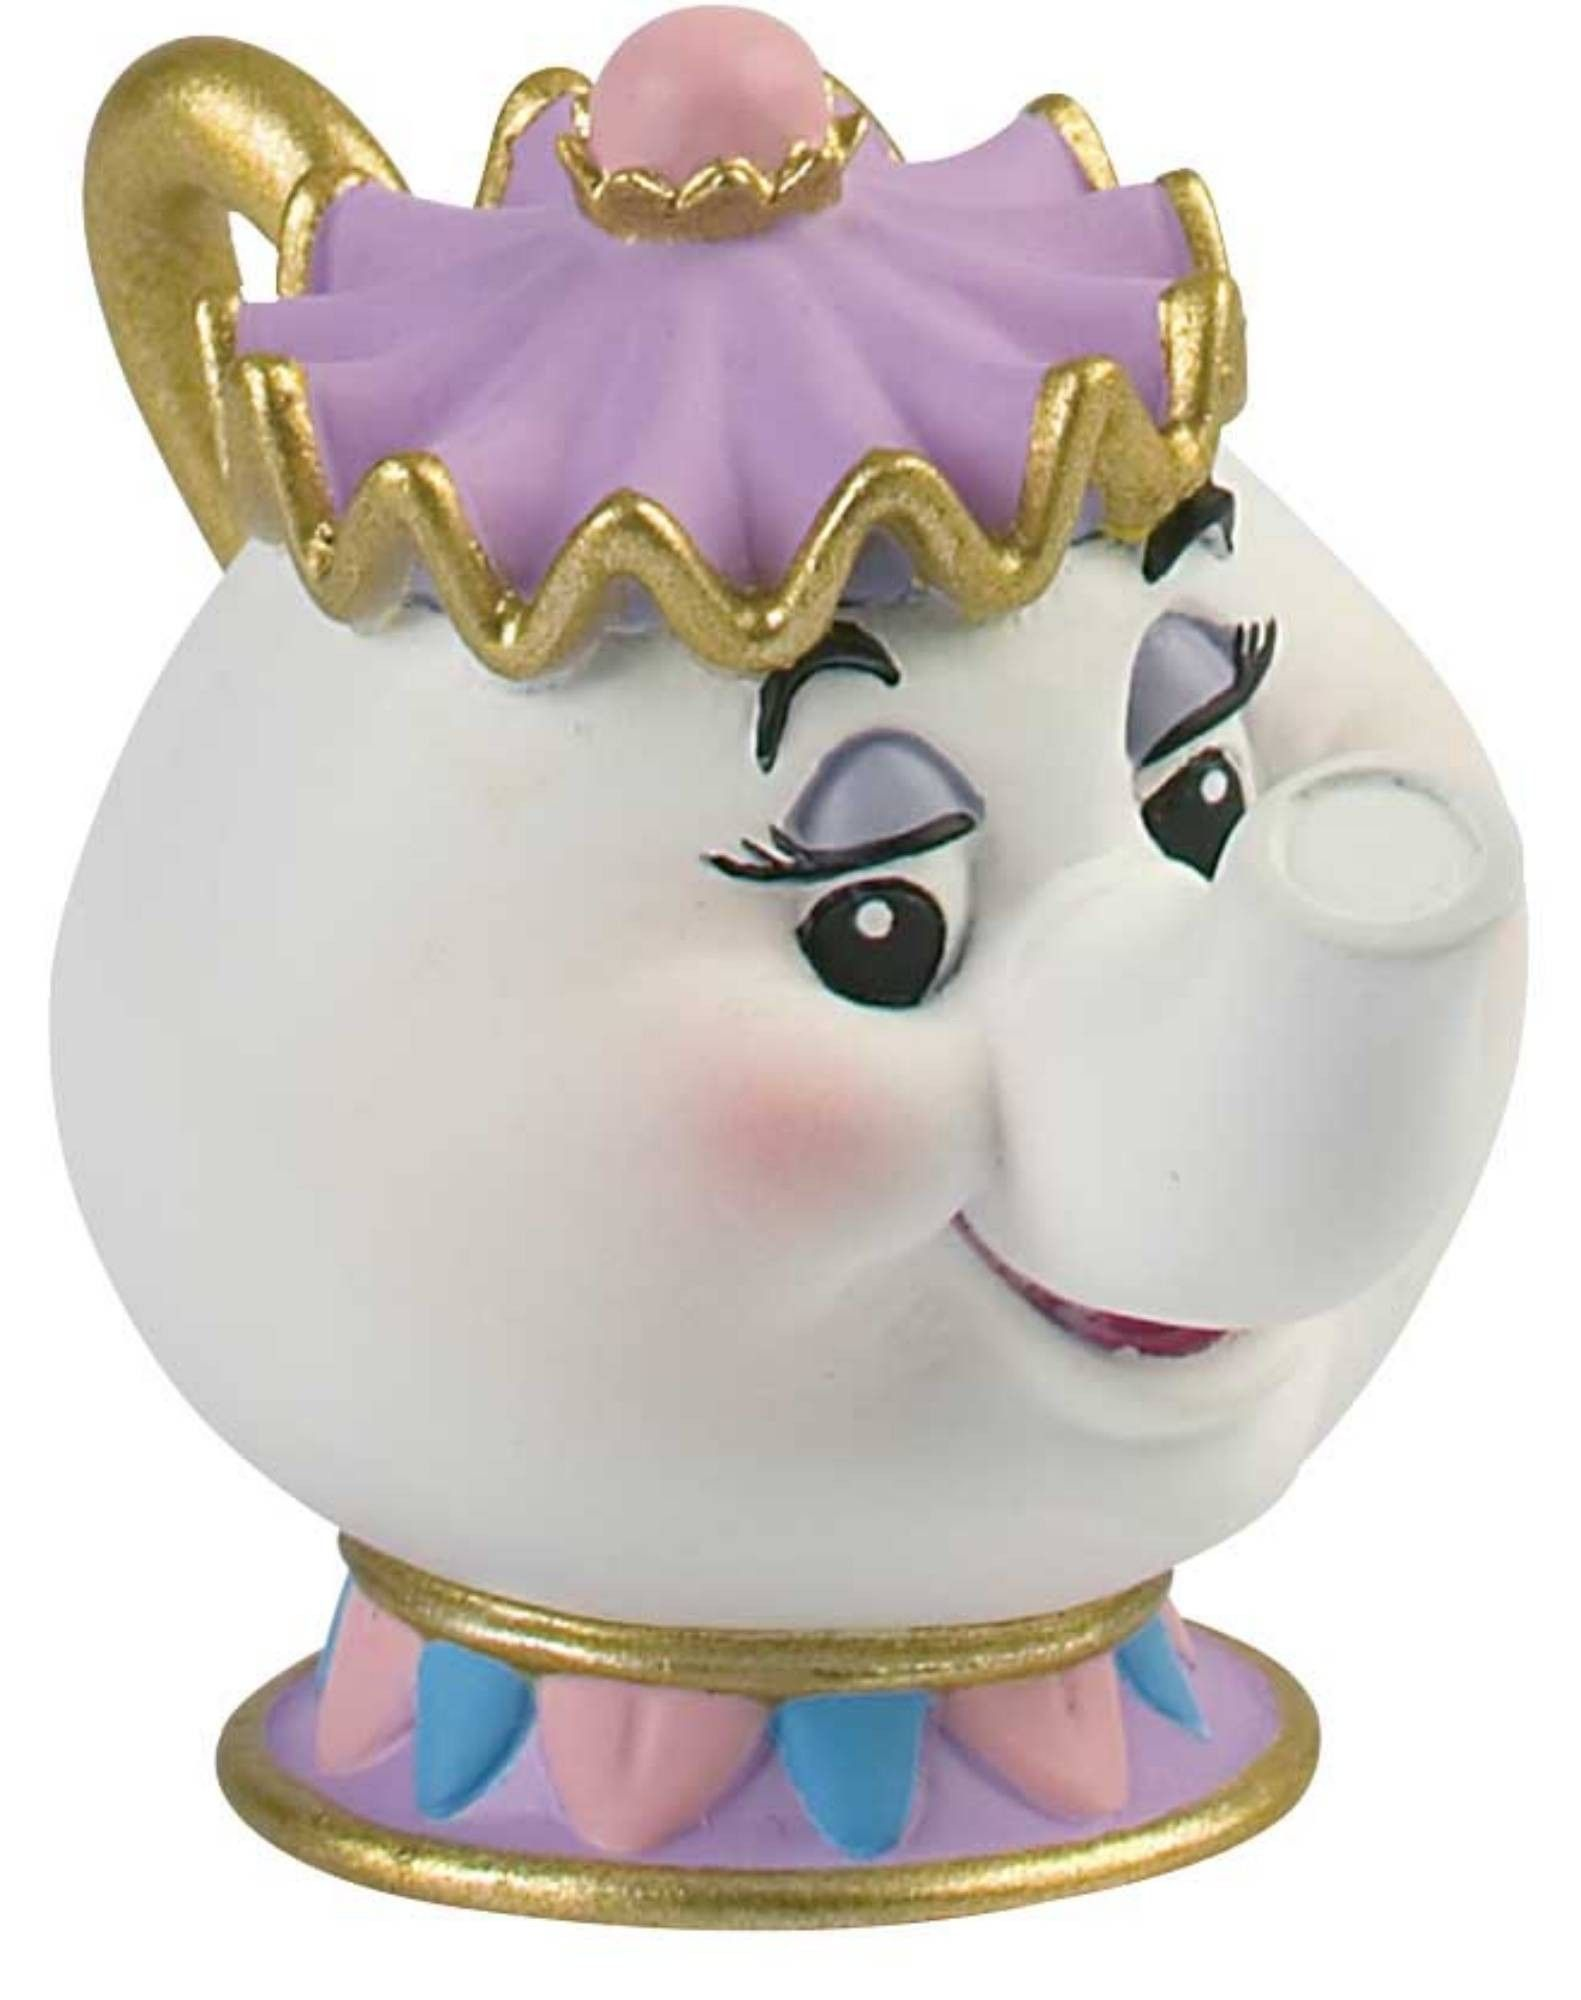 Bullyland Disney Beauty and the Beast-Belle Mrs Potts figures nouvelle princesse